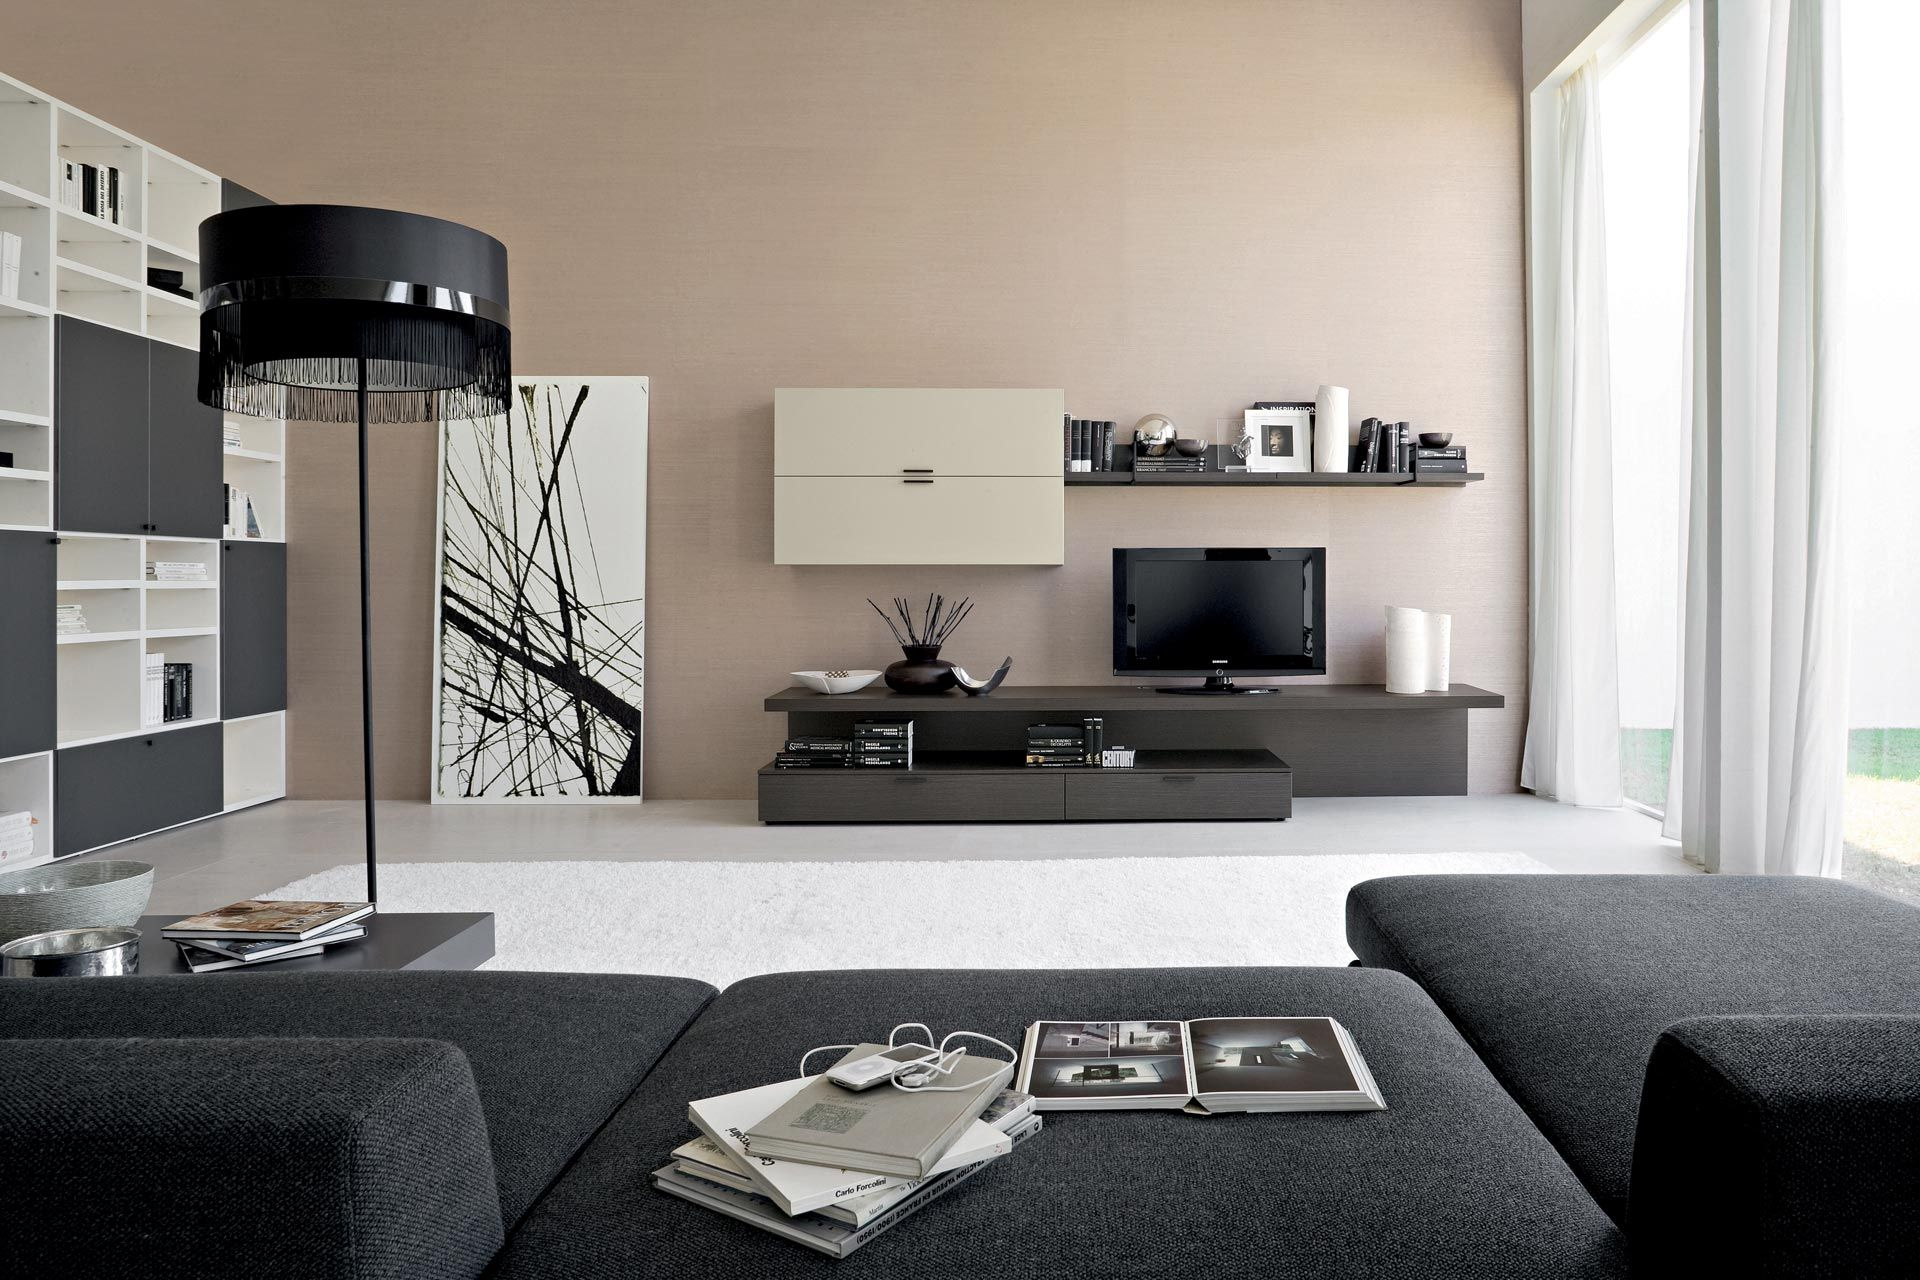 Arturo on  Modern Living Room DesignsContemporary Living RoomsLiving Room  IdeasLiving Room InteriorDesign. Arturo on   Design  Modern living rooms and Living room designs